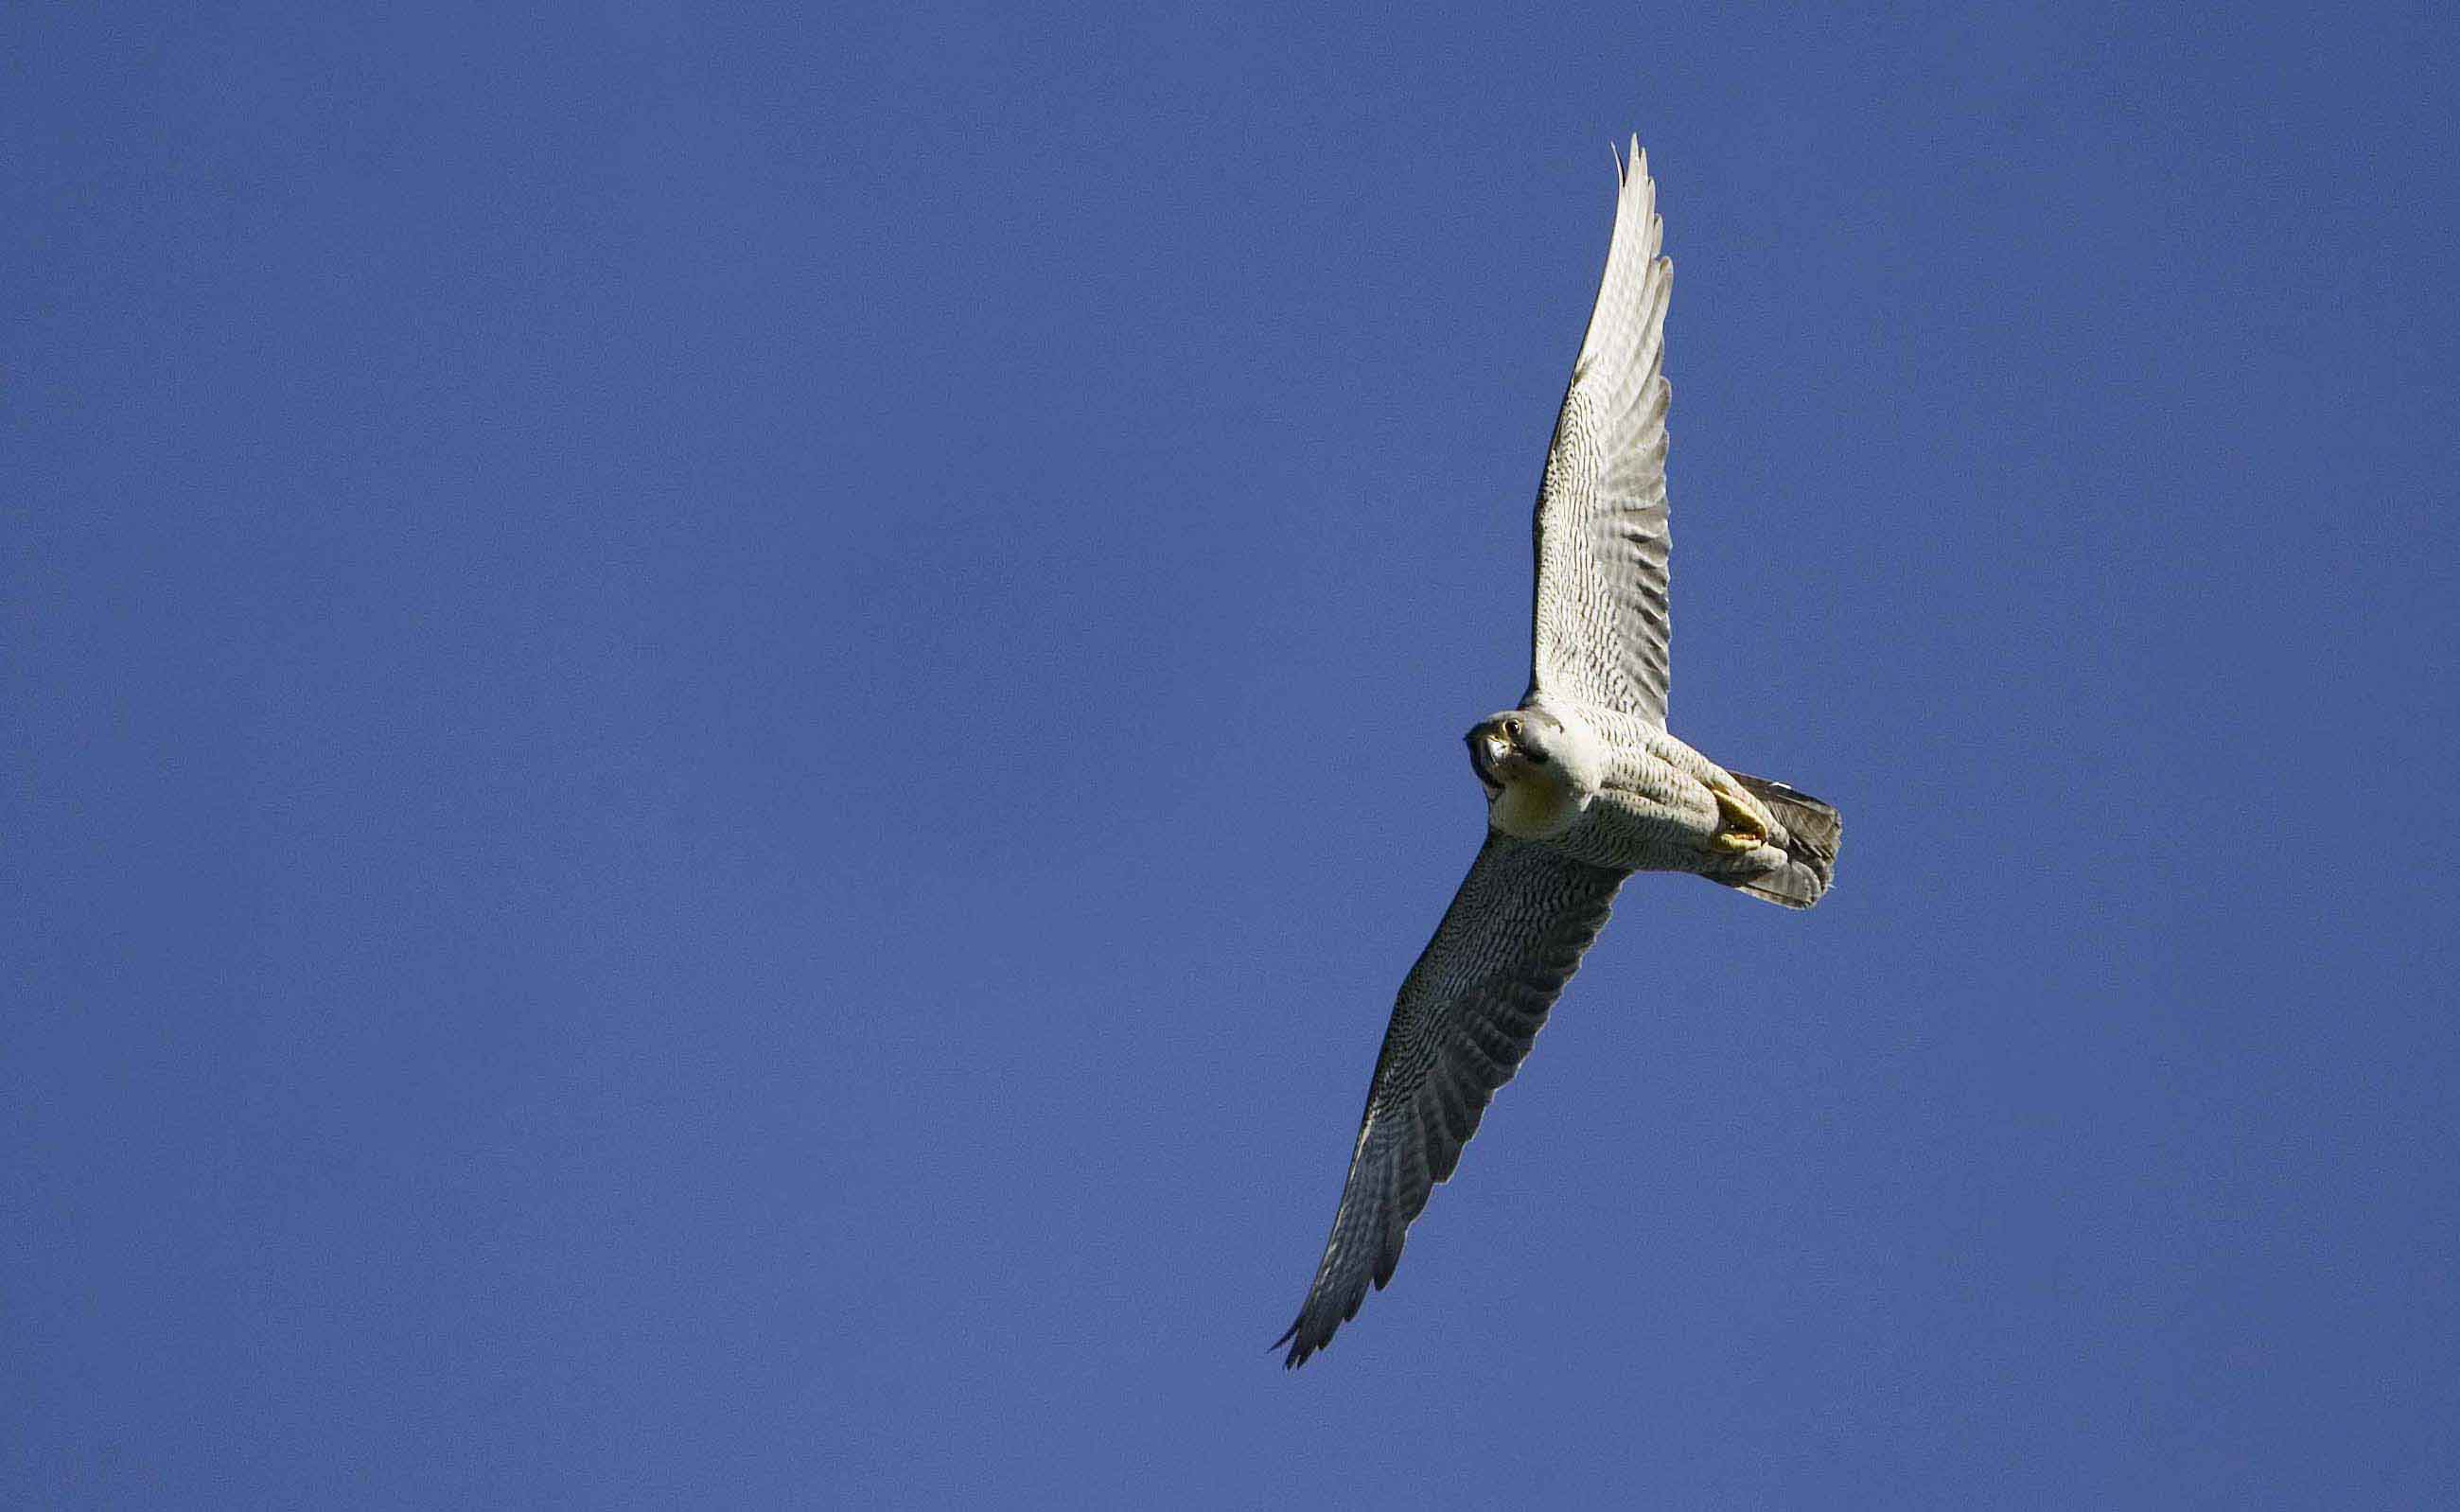 Peregrine-female-flight-Wales-09-4-low-res-Keith-offord.jpg